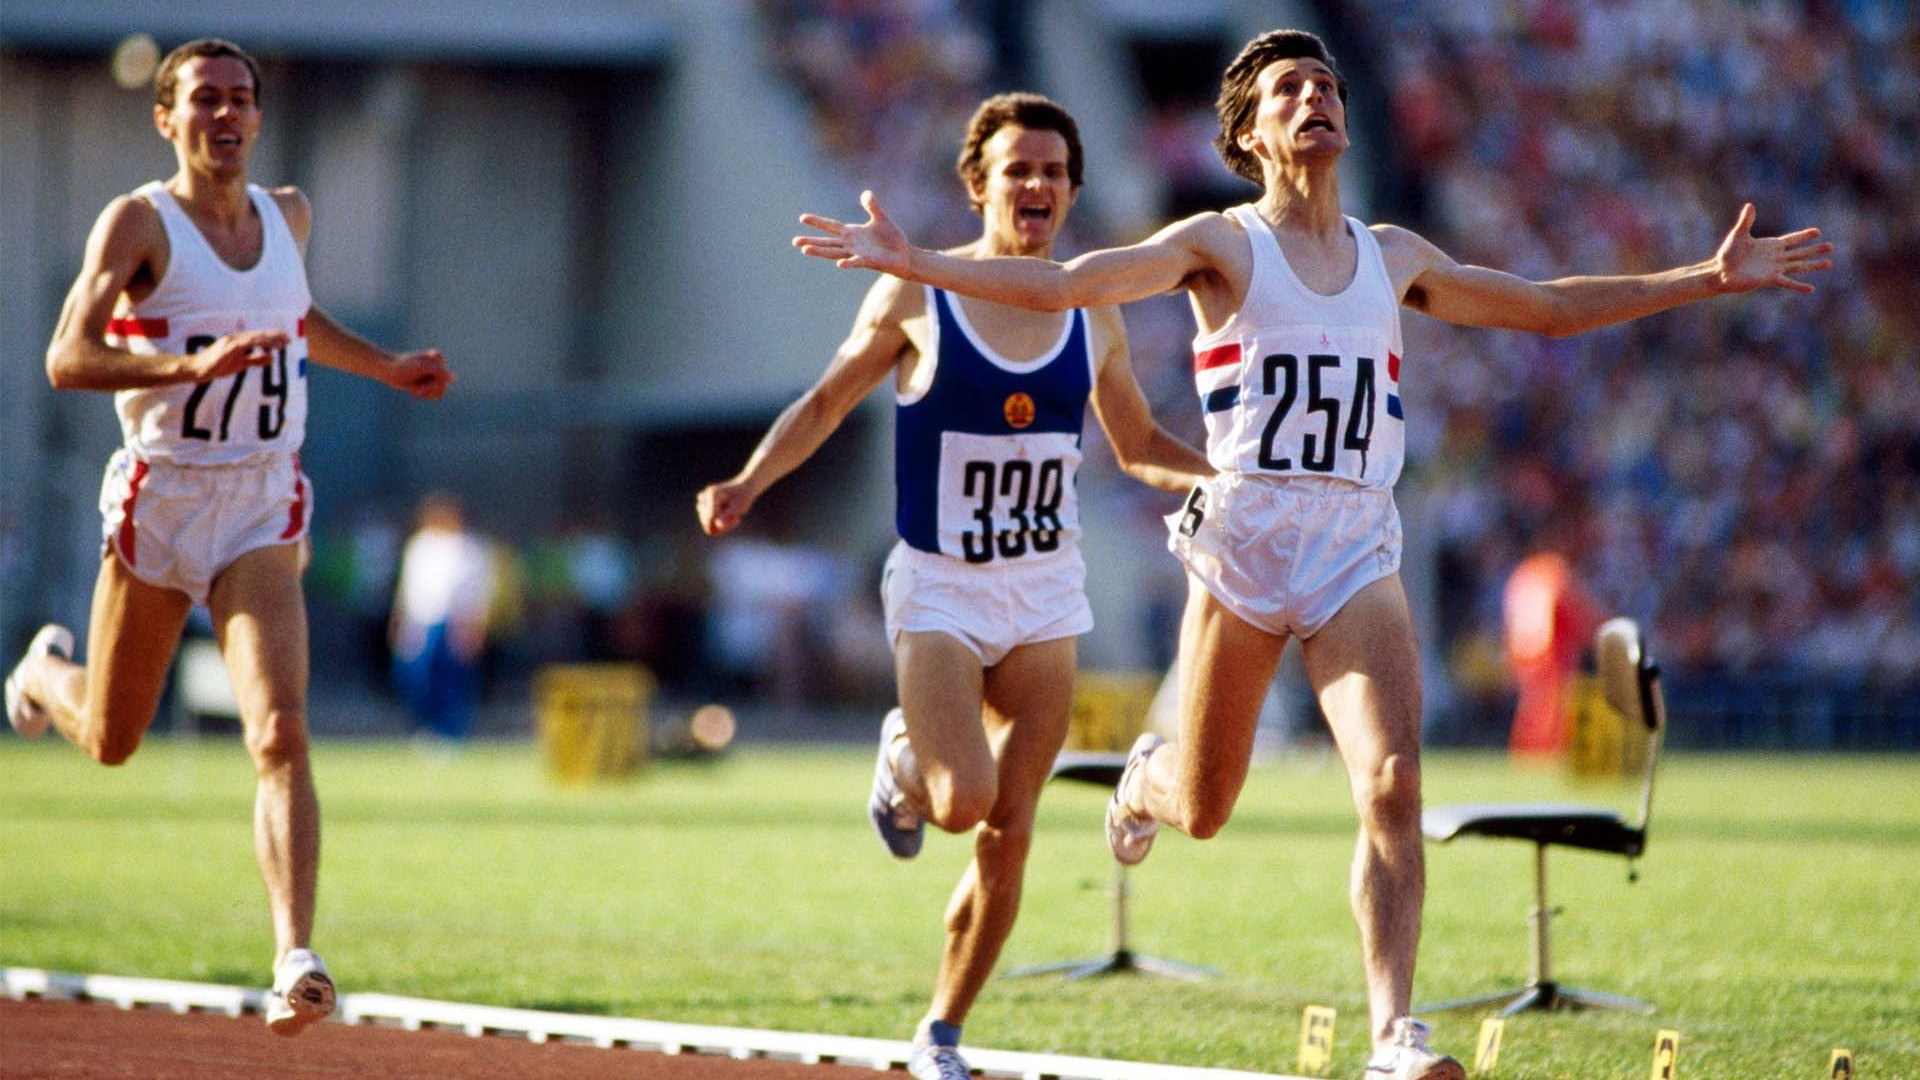 Seb Coe may need to make tough decisions that don't favor Nike, then What?